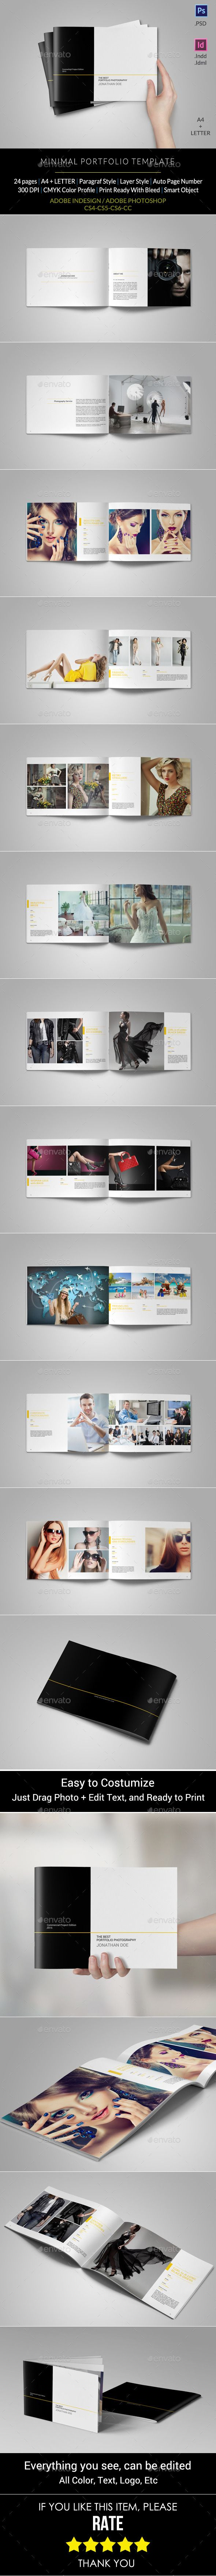 Portfolio Photographer — Photoshop PSD #psd #elegant • Available here → https://graphicriver.net/item/portfolio-photographer/11350344?ref=pxcr